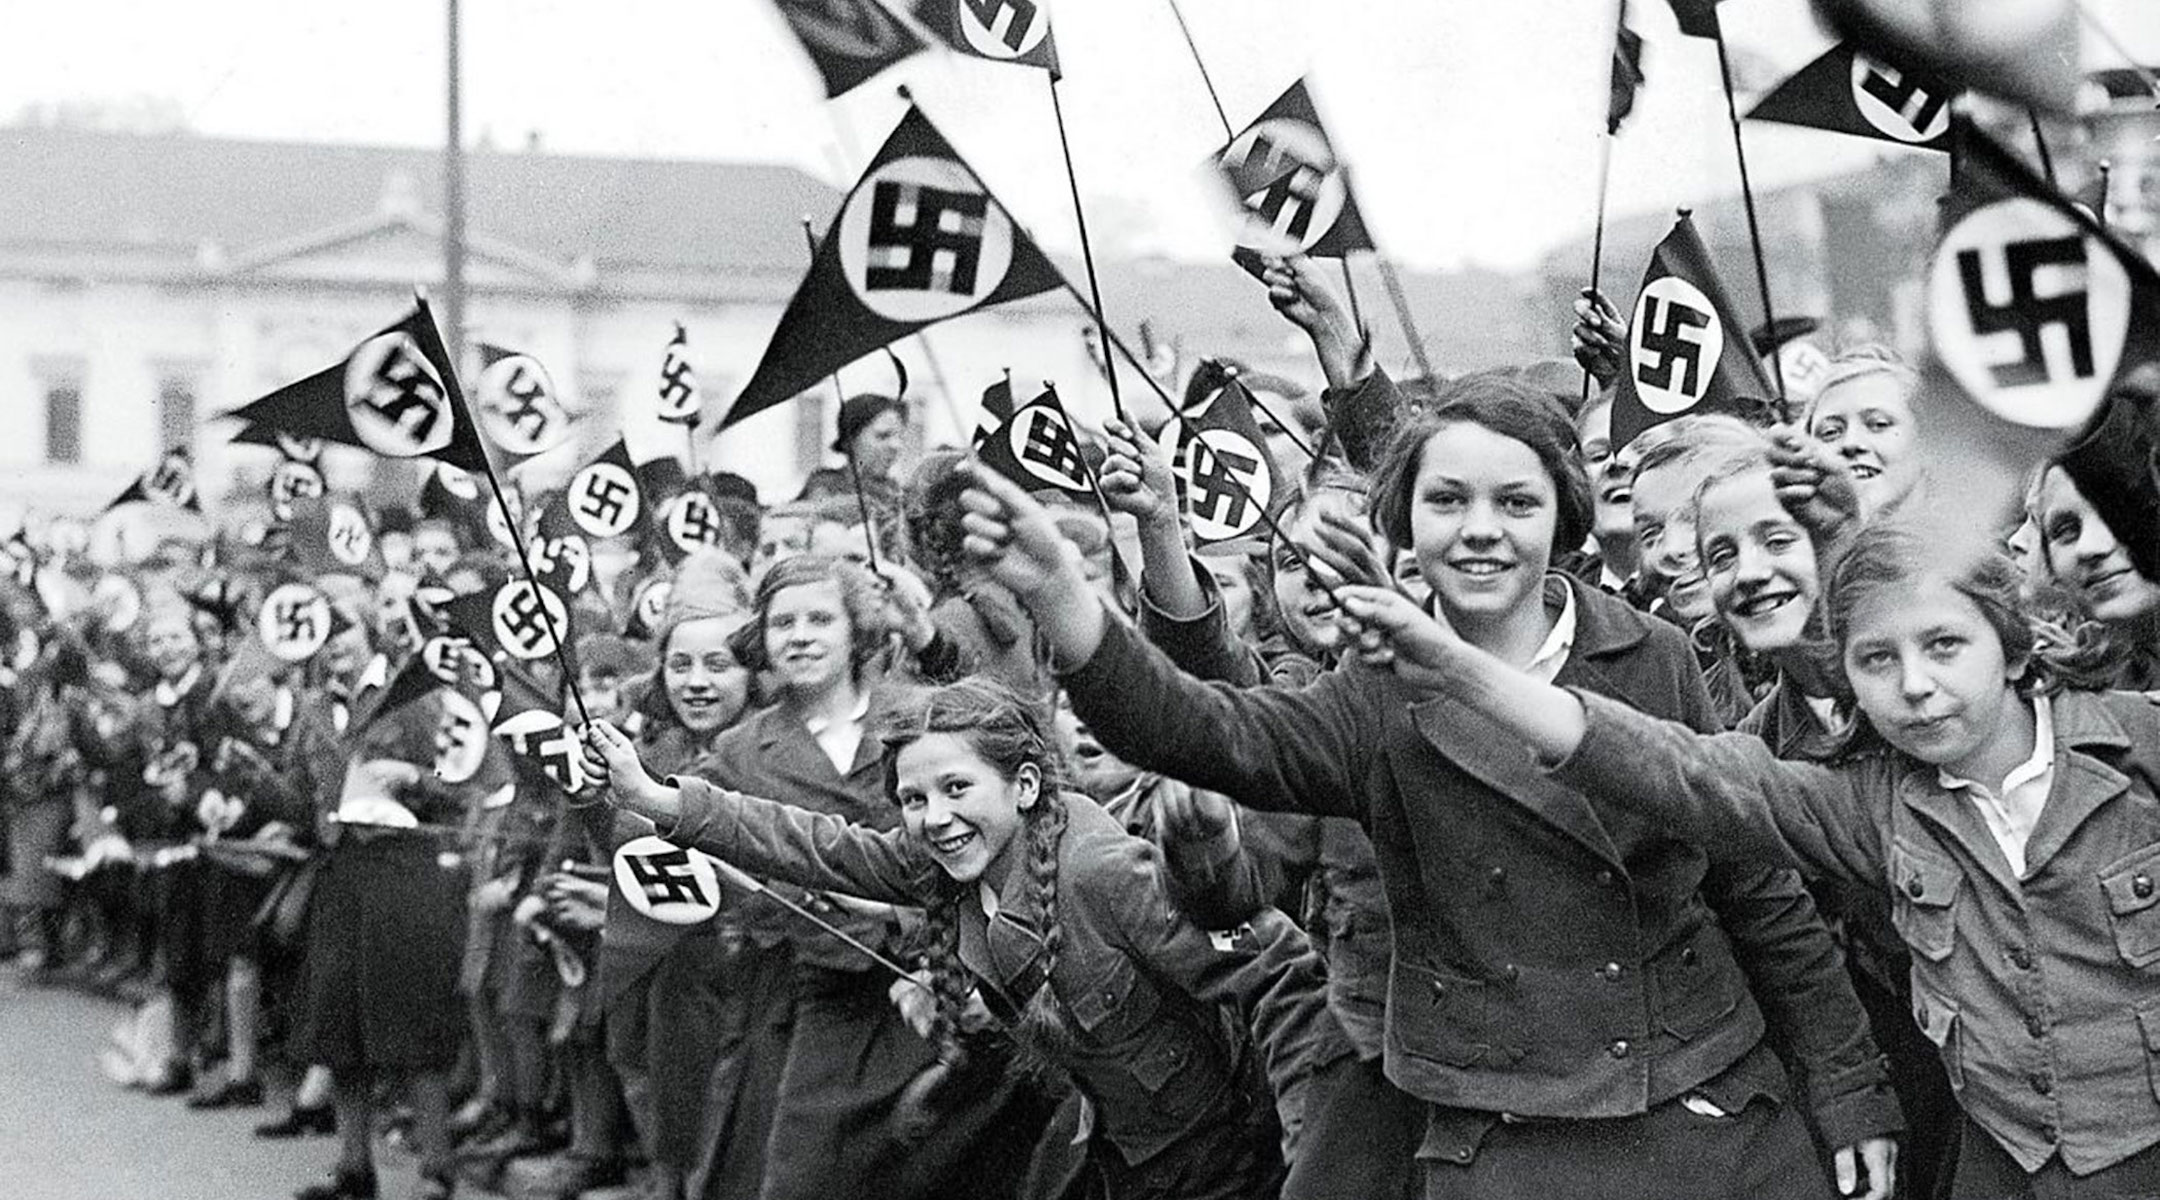 Austrian members of the League of German Girls wave Nazi flags in support of the German annexation of Austria, in Vienna, March 1938. (US Holocaust Memorial Museum)